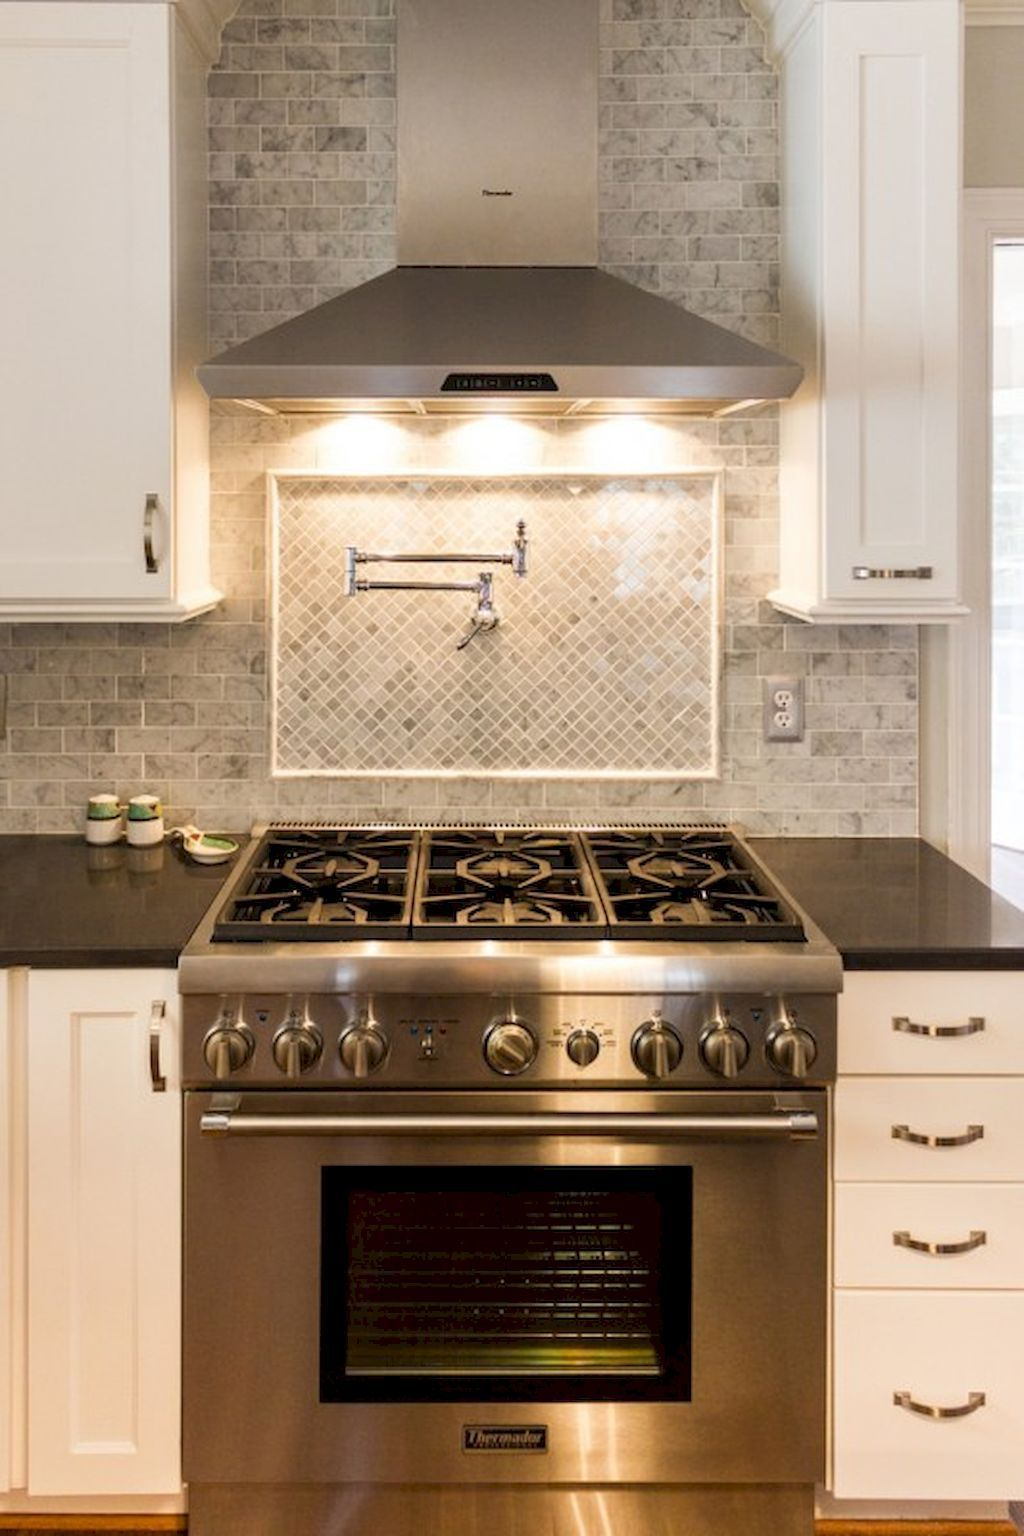 Adorable 60 beautiful kitchen backsplash tile patterns ideas https decorapatio com 2017 06 16 60 beautiful kitchen backsplash tile patterns ideas